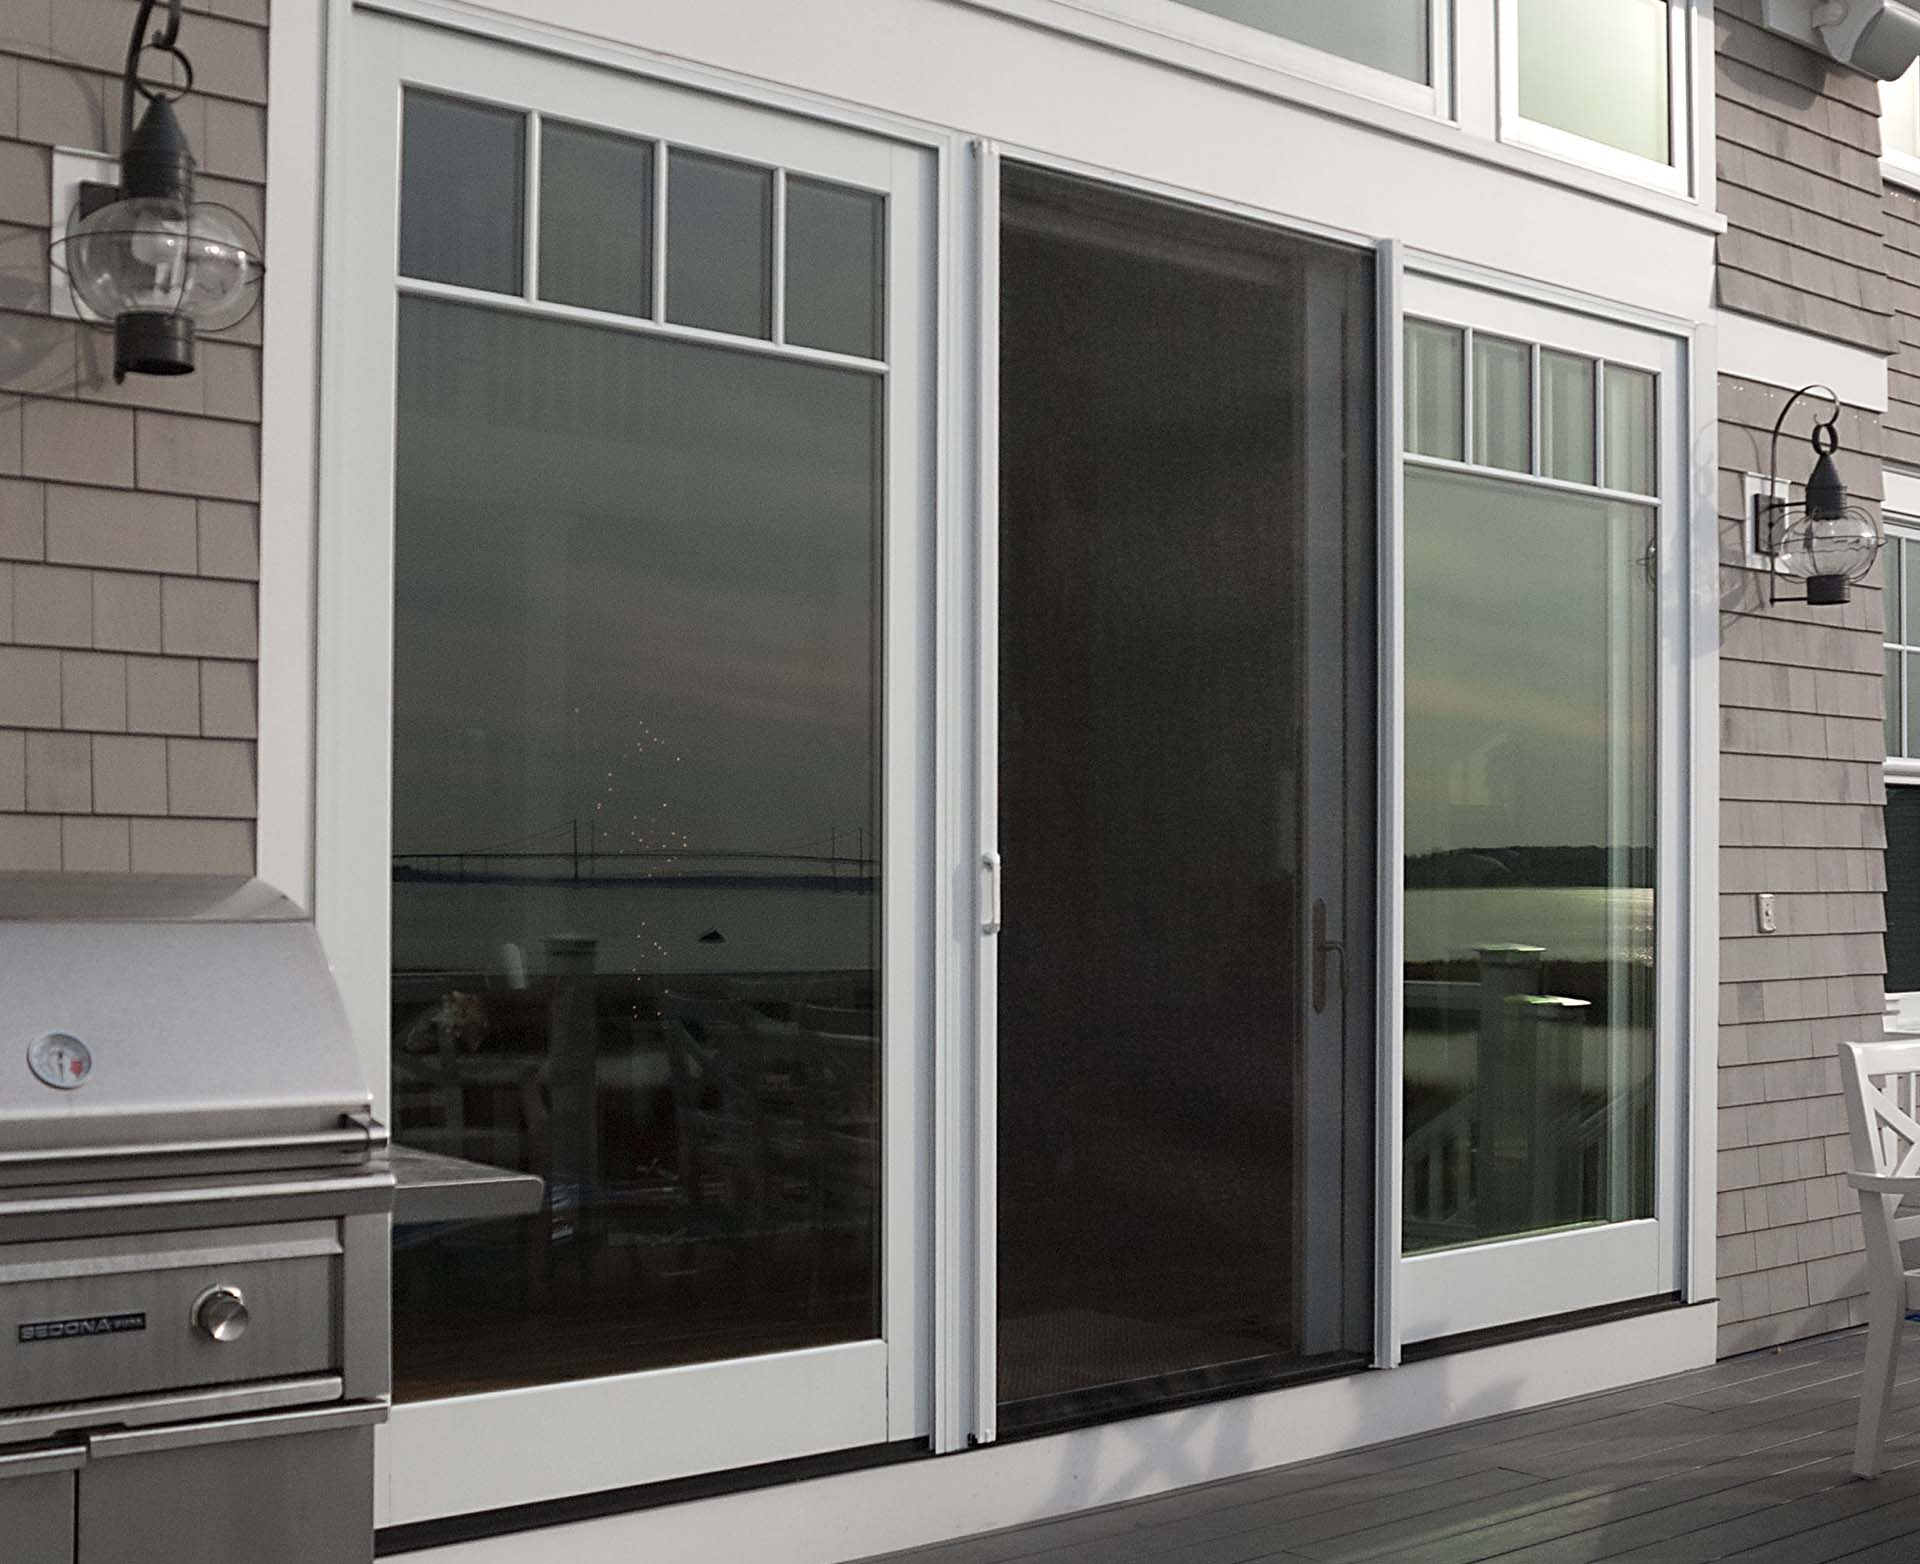 Phantom Screens are perfect for single sliding doors